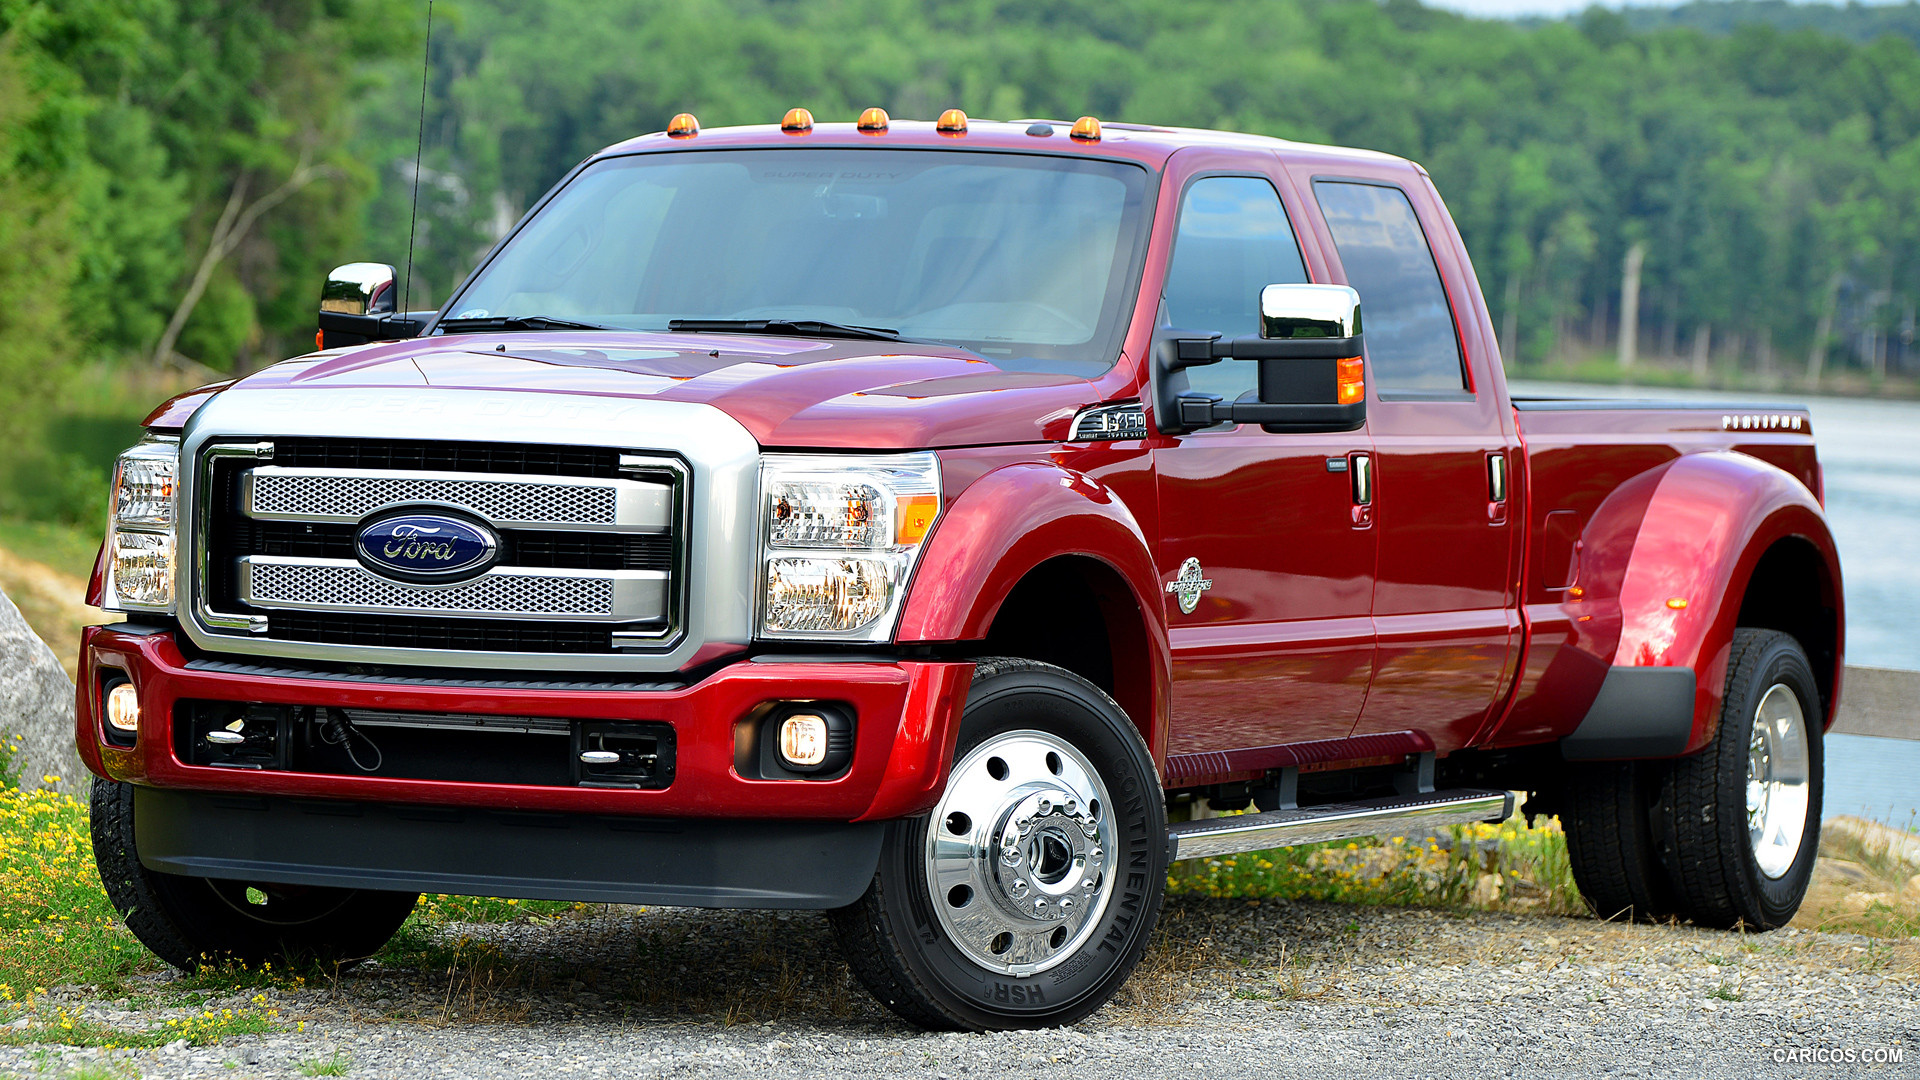 Ford F-Series Super Duty photo 125537